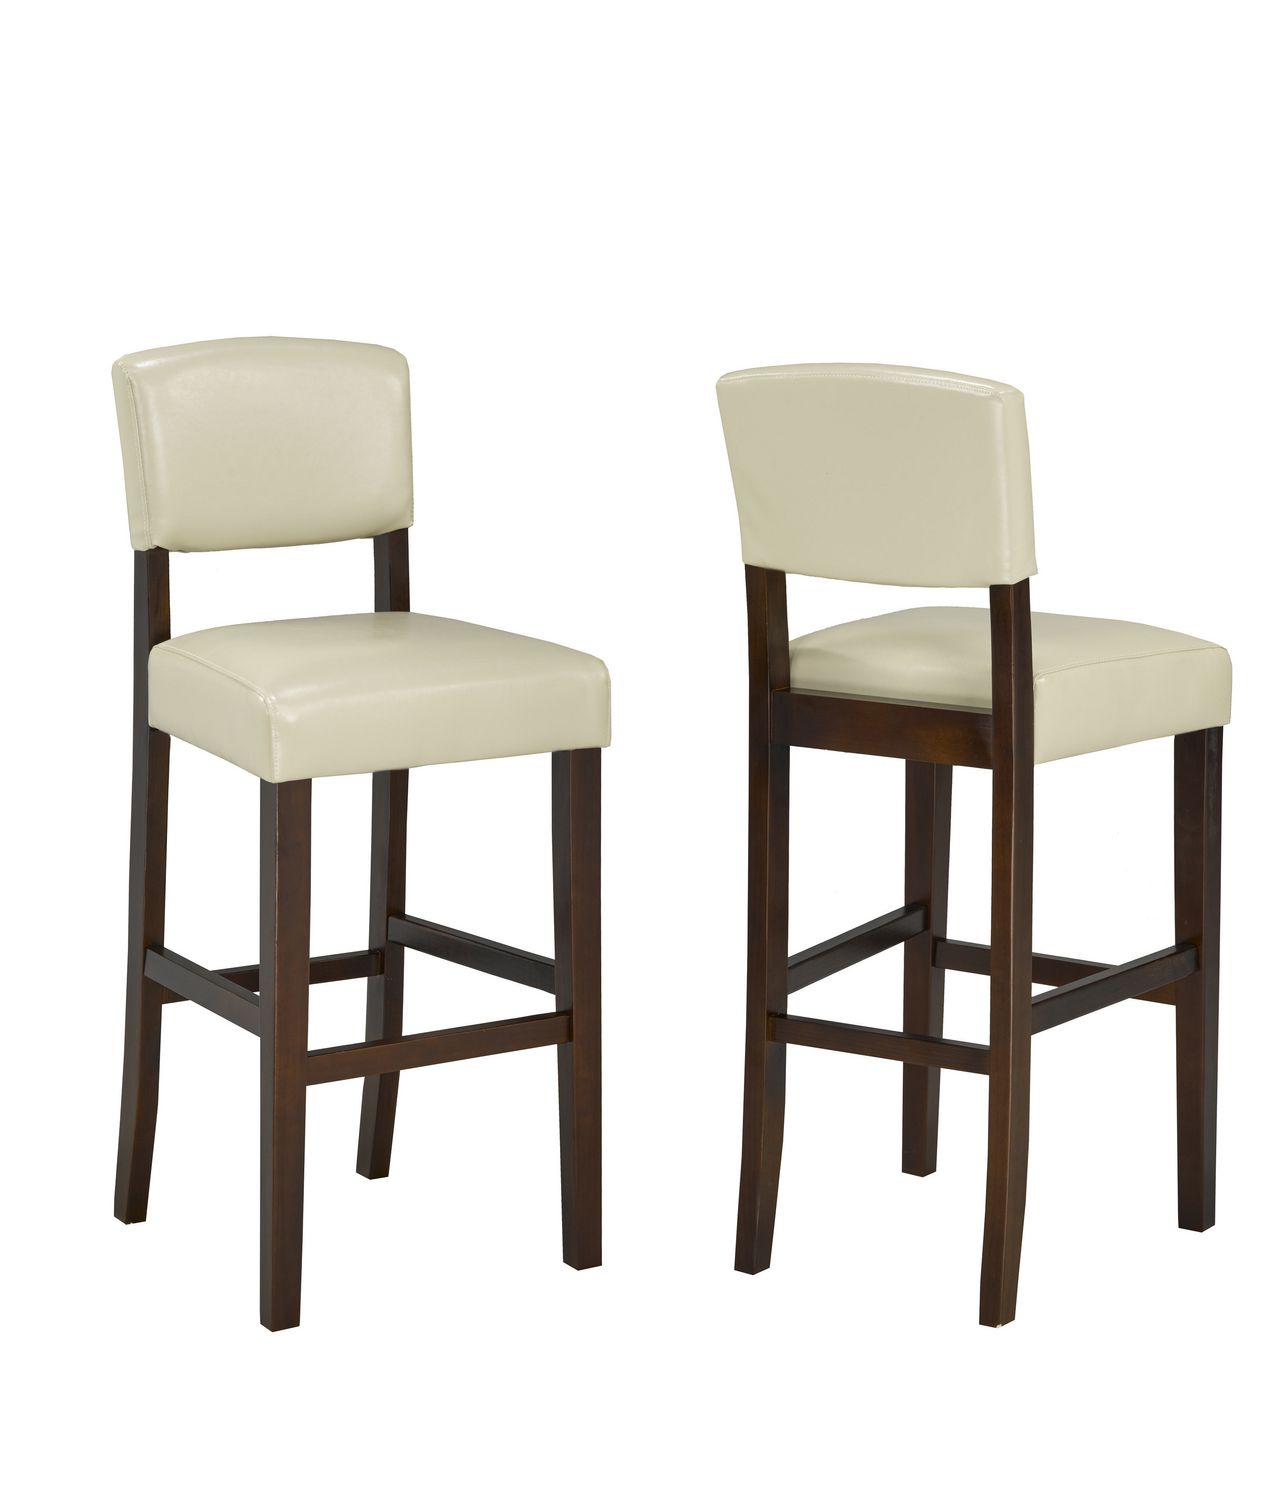 Bras 29 Bar Stools Set of 2 Cream